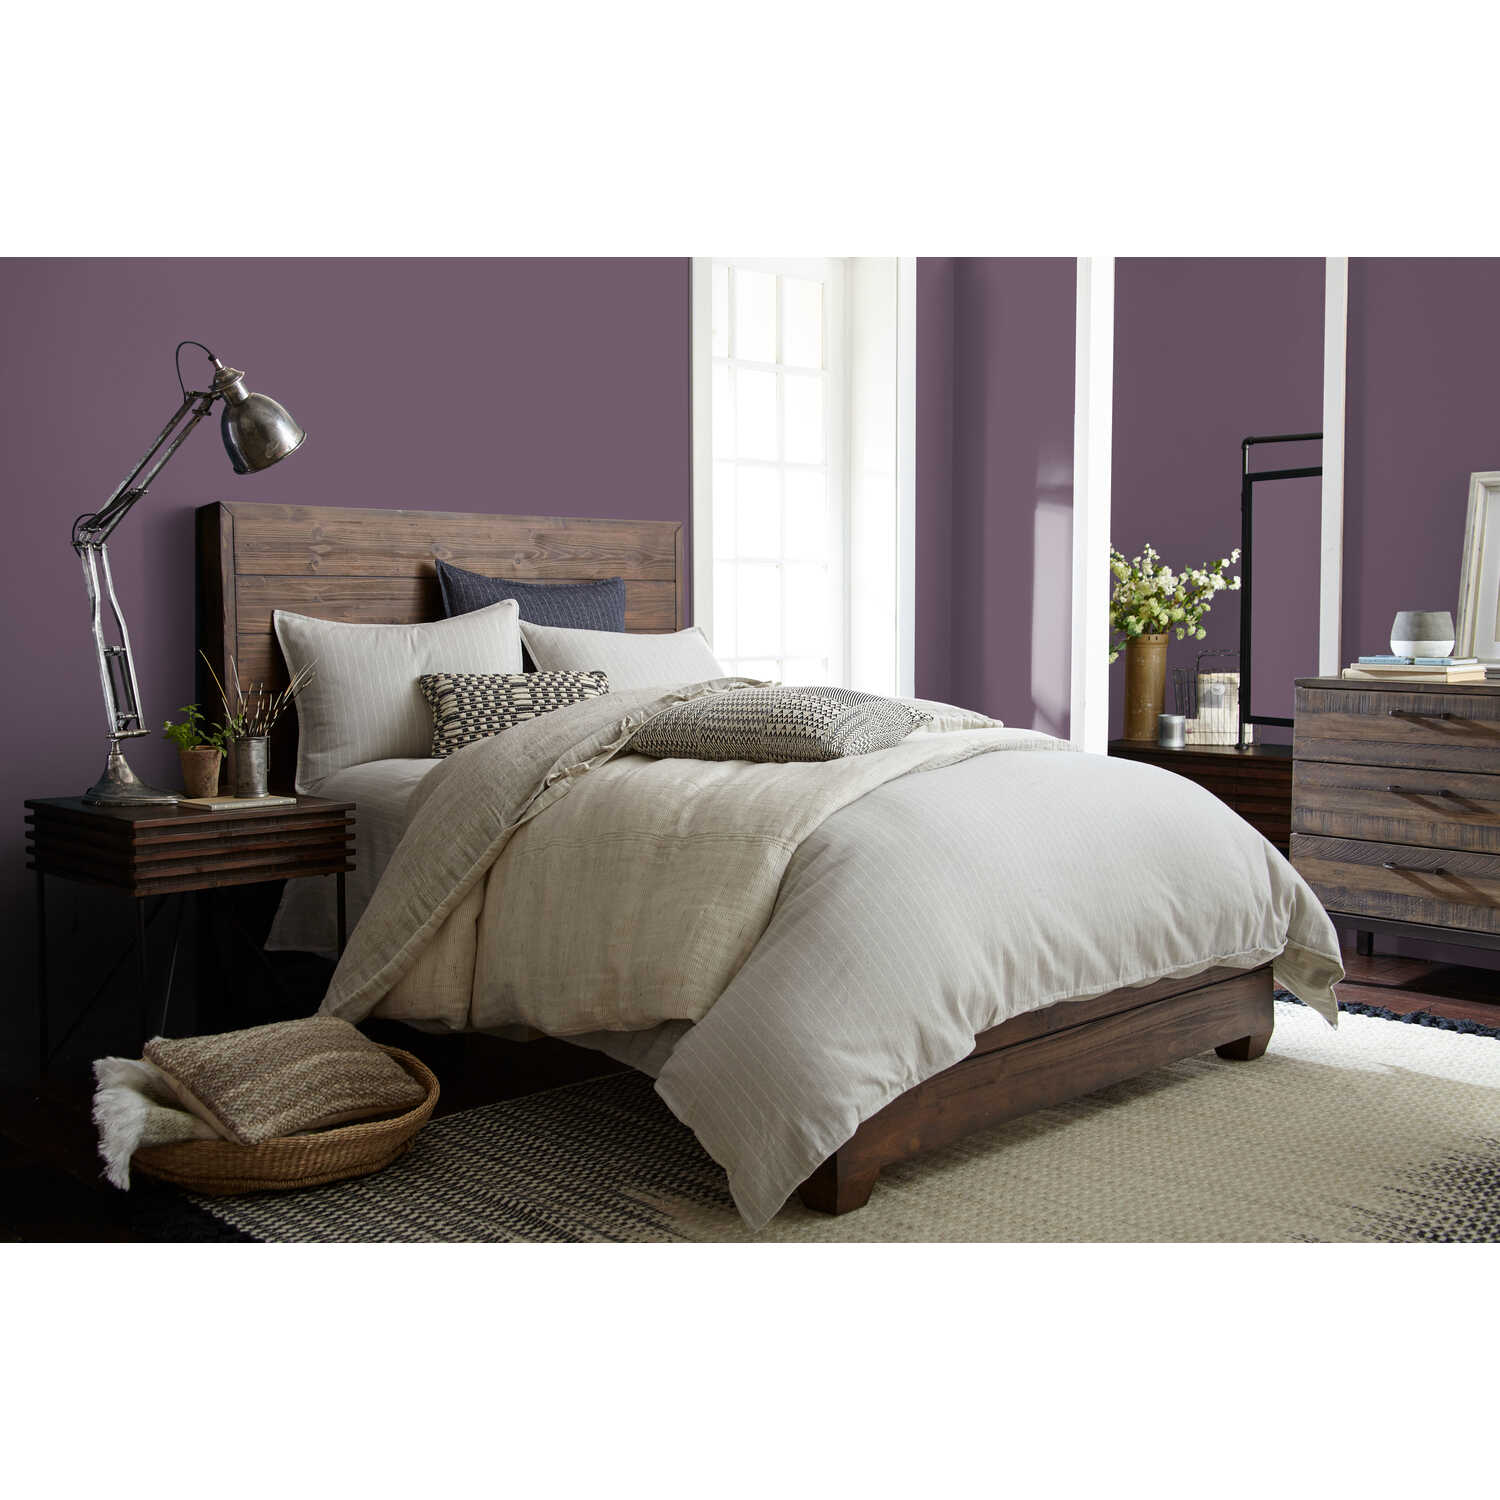 Magnolia Home  by Joanna Gaines  Eggshell  Webster Avenue  Deep Base  Acrylic  Paint  Indoor  1 gal.